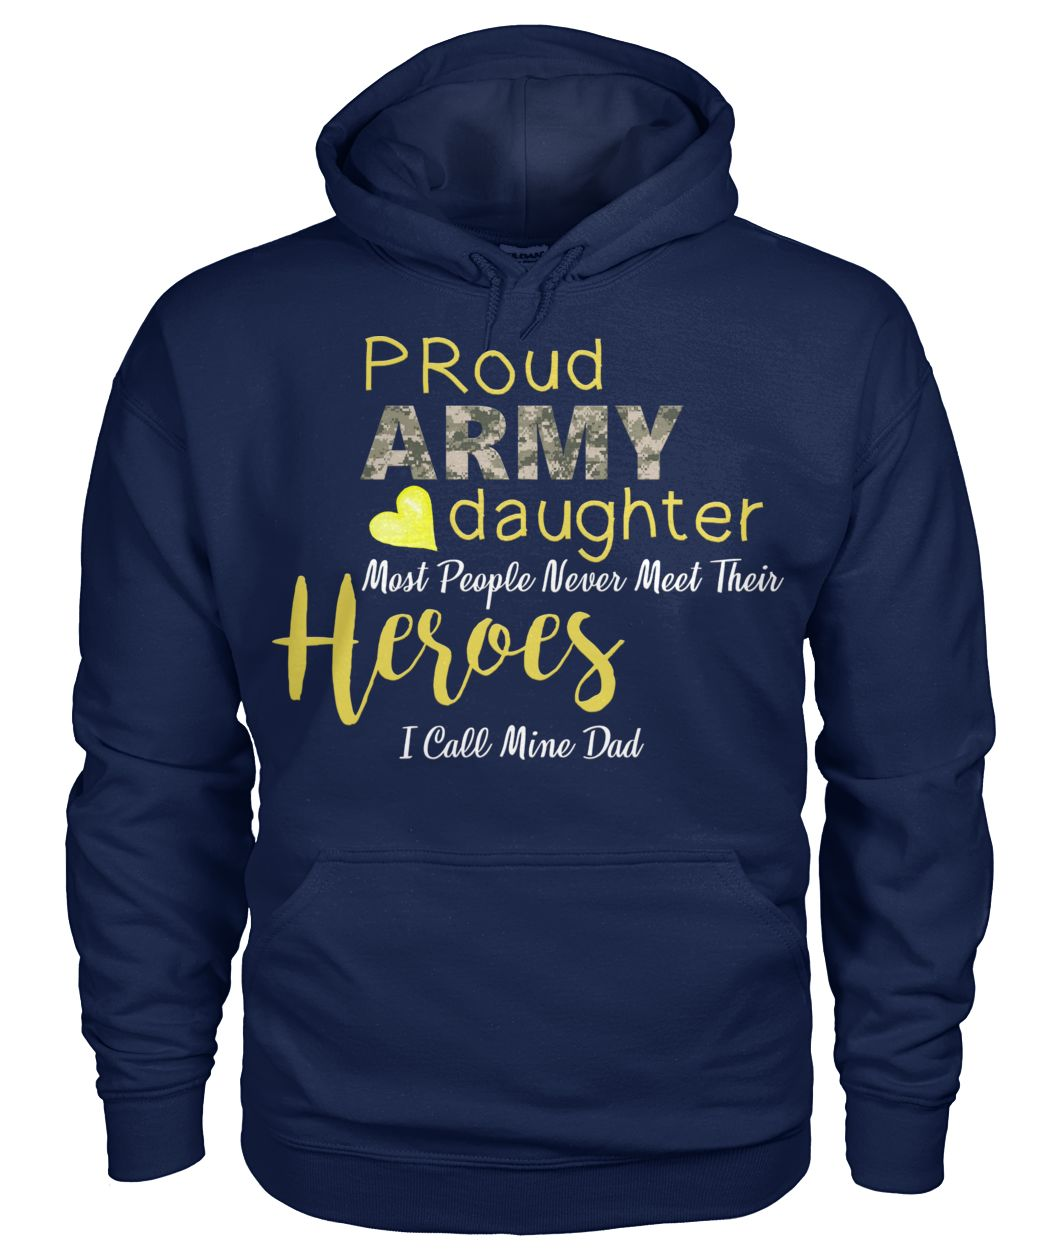 Proud army daughter most people never meet their heroes I call mine dad me wp